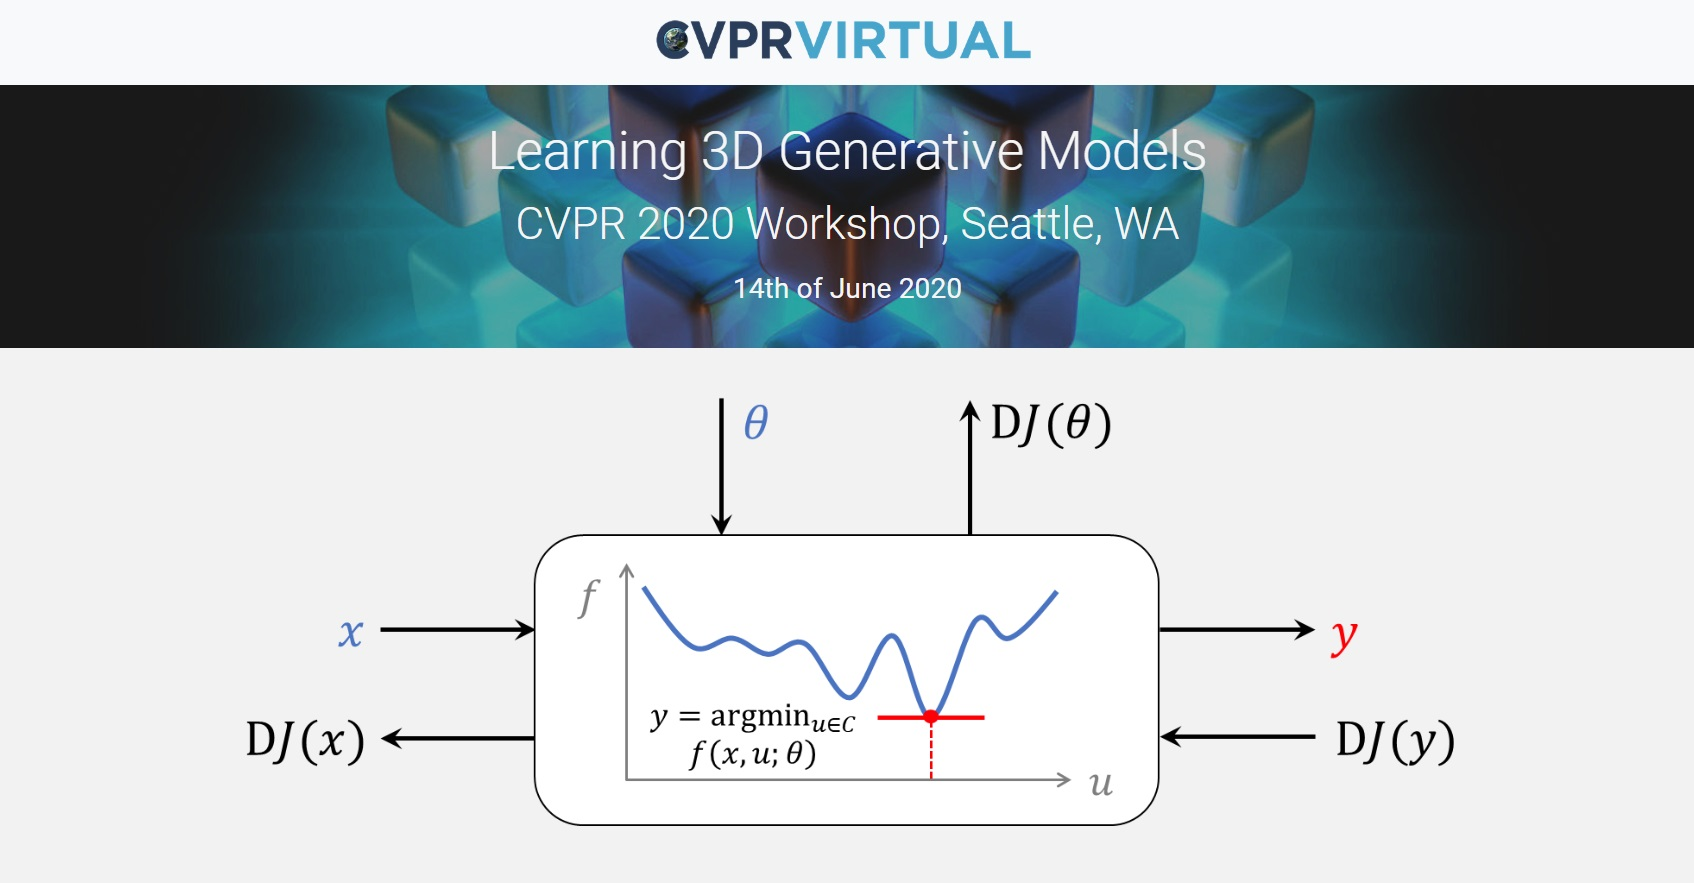 Learning 3D Generative Models Workshop